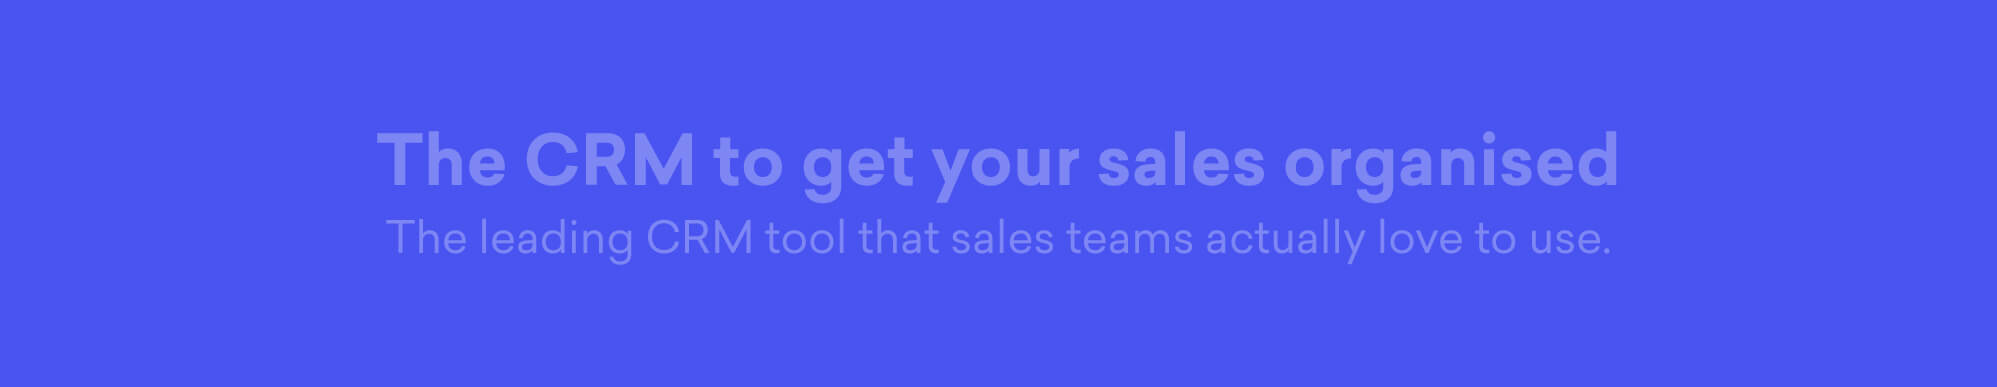 CRm to get your sales organised